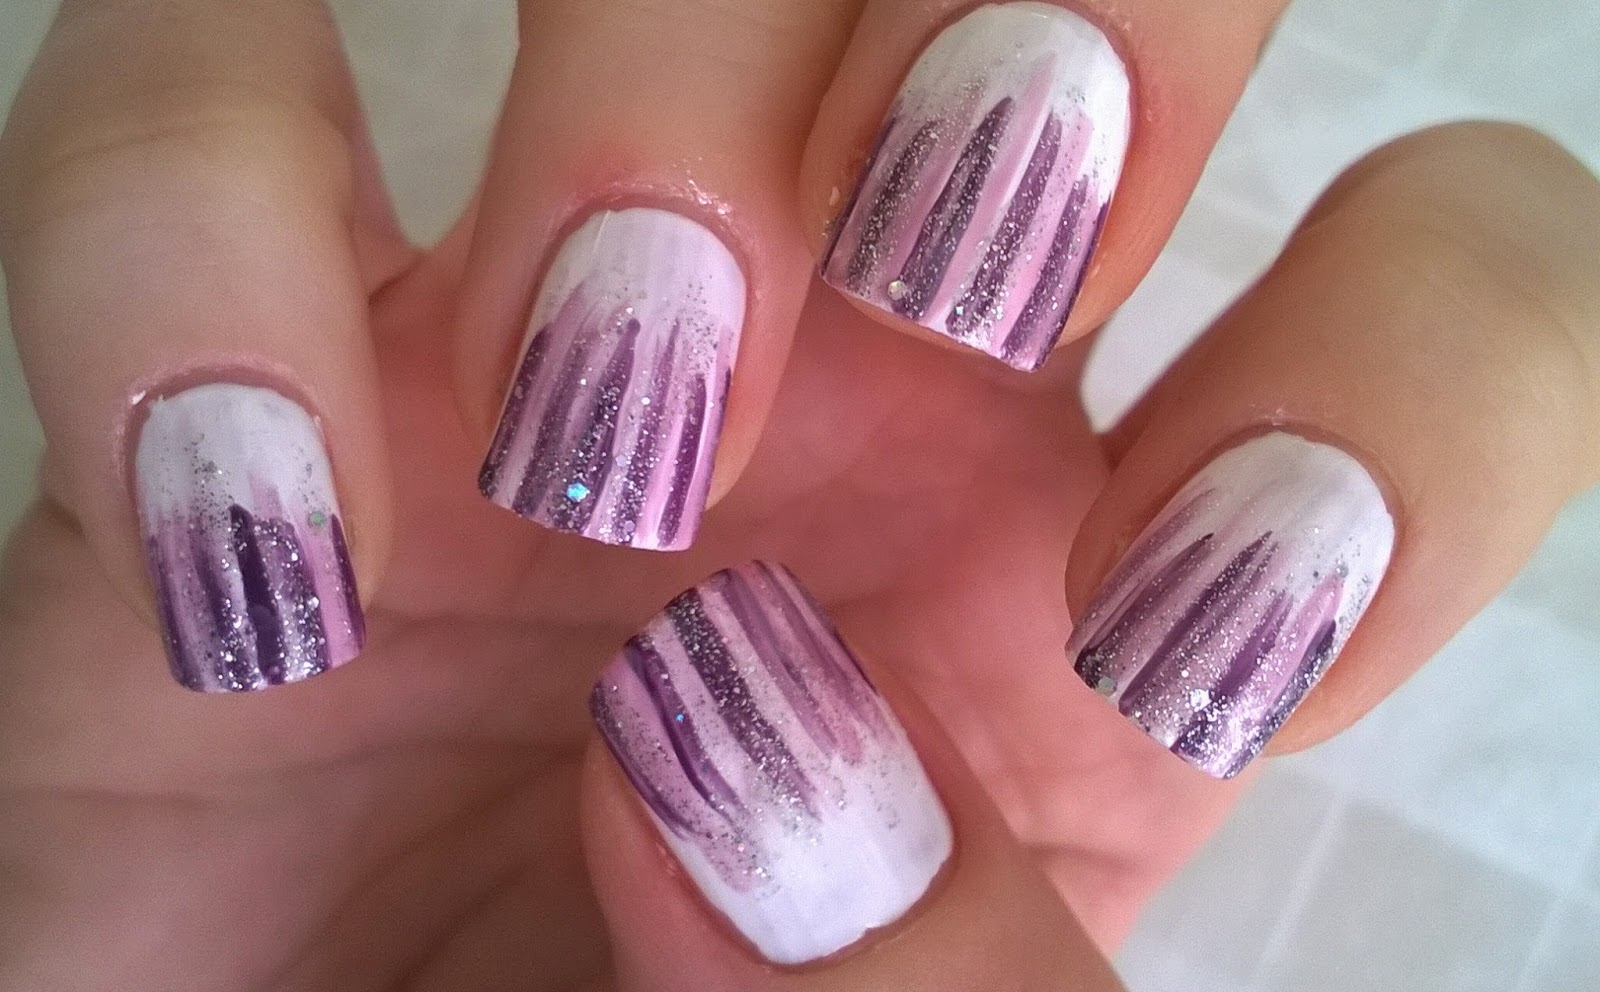 Life world women waterfall nail art white based lilac and waterfall nail art white based lilac and silver glitter nail design prinsesfo Images